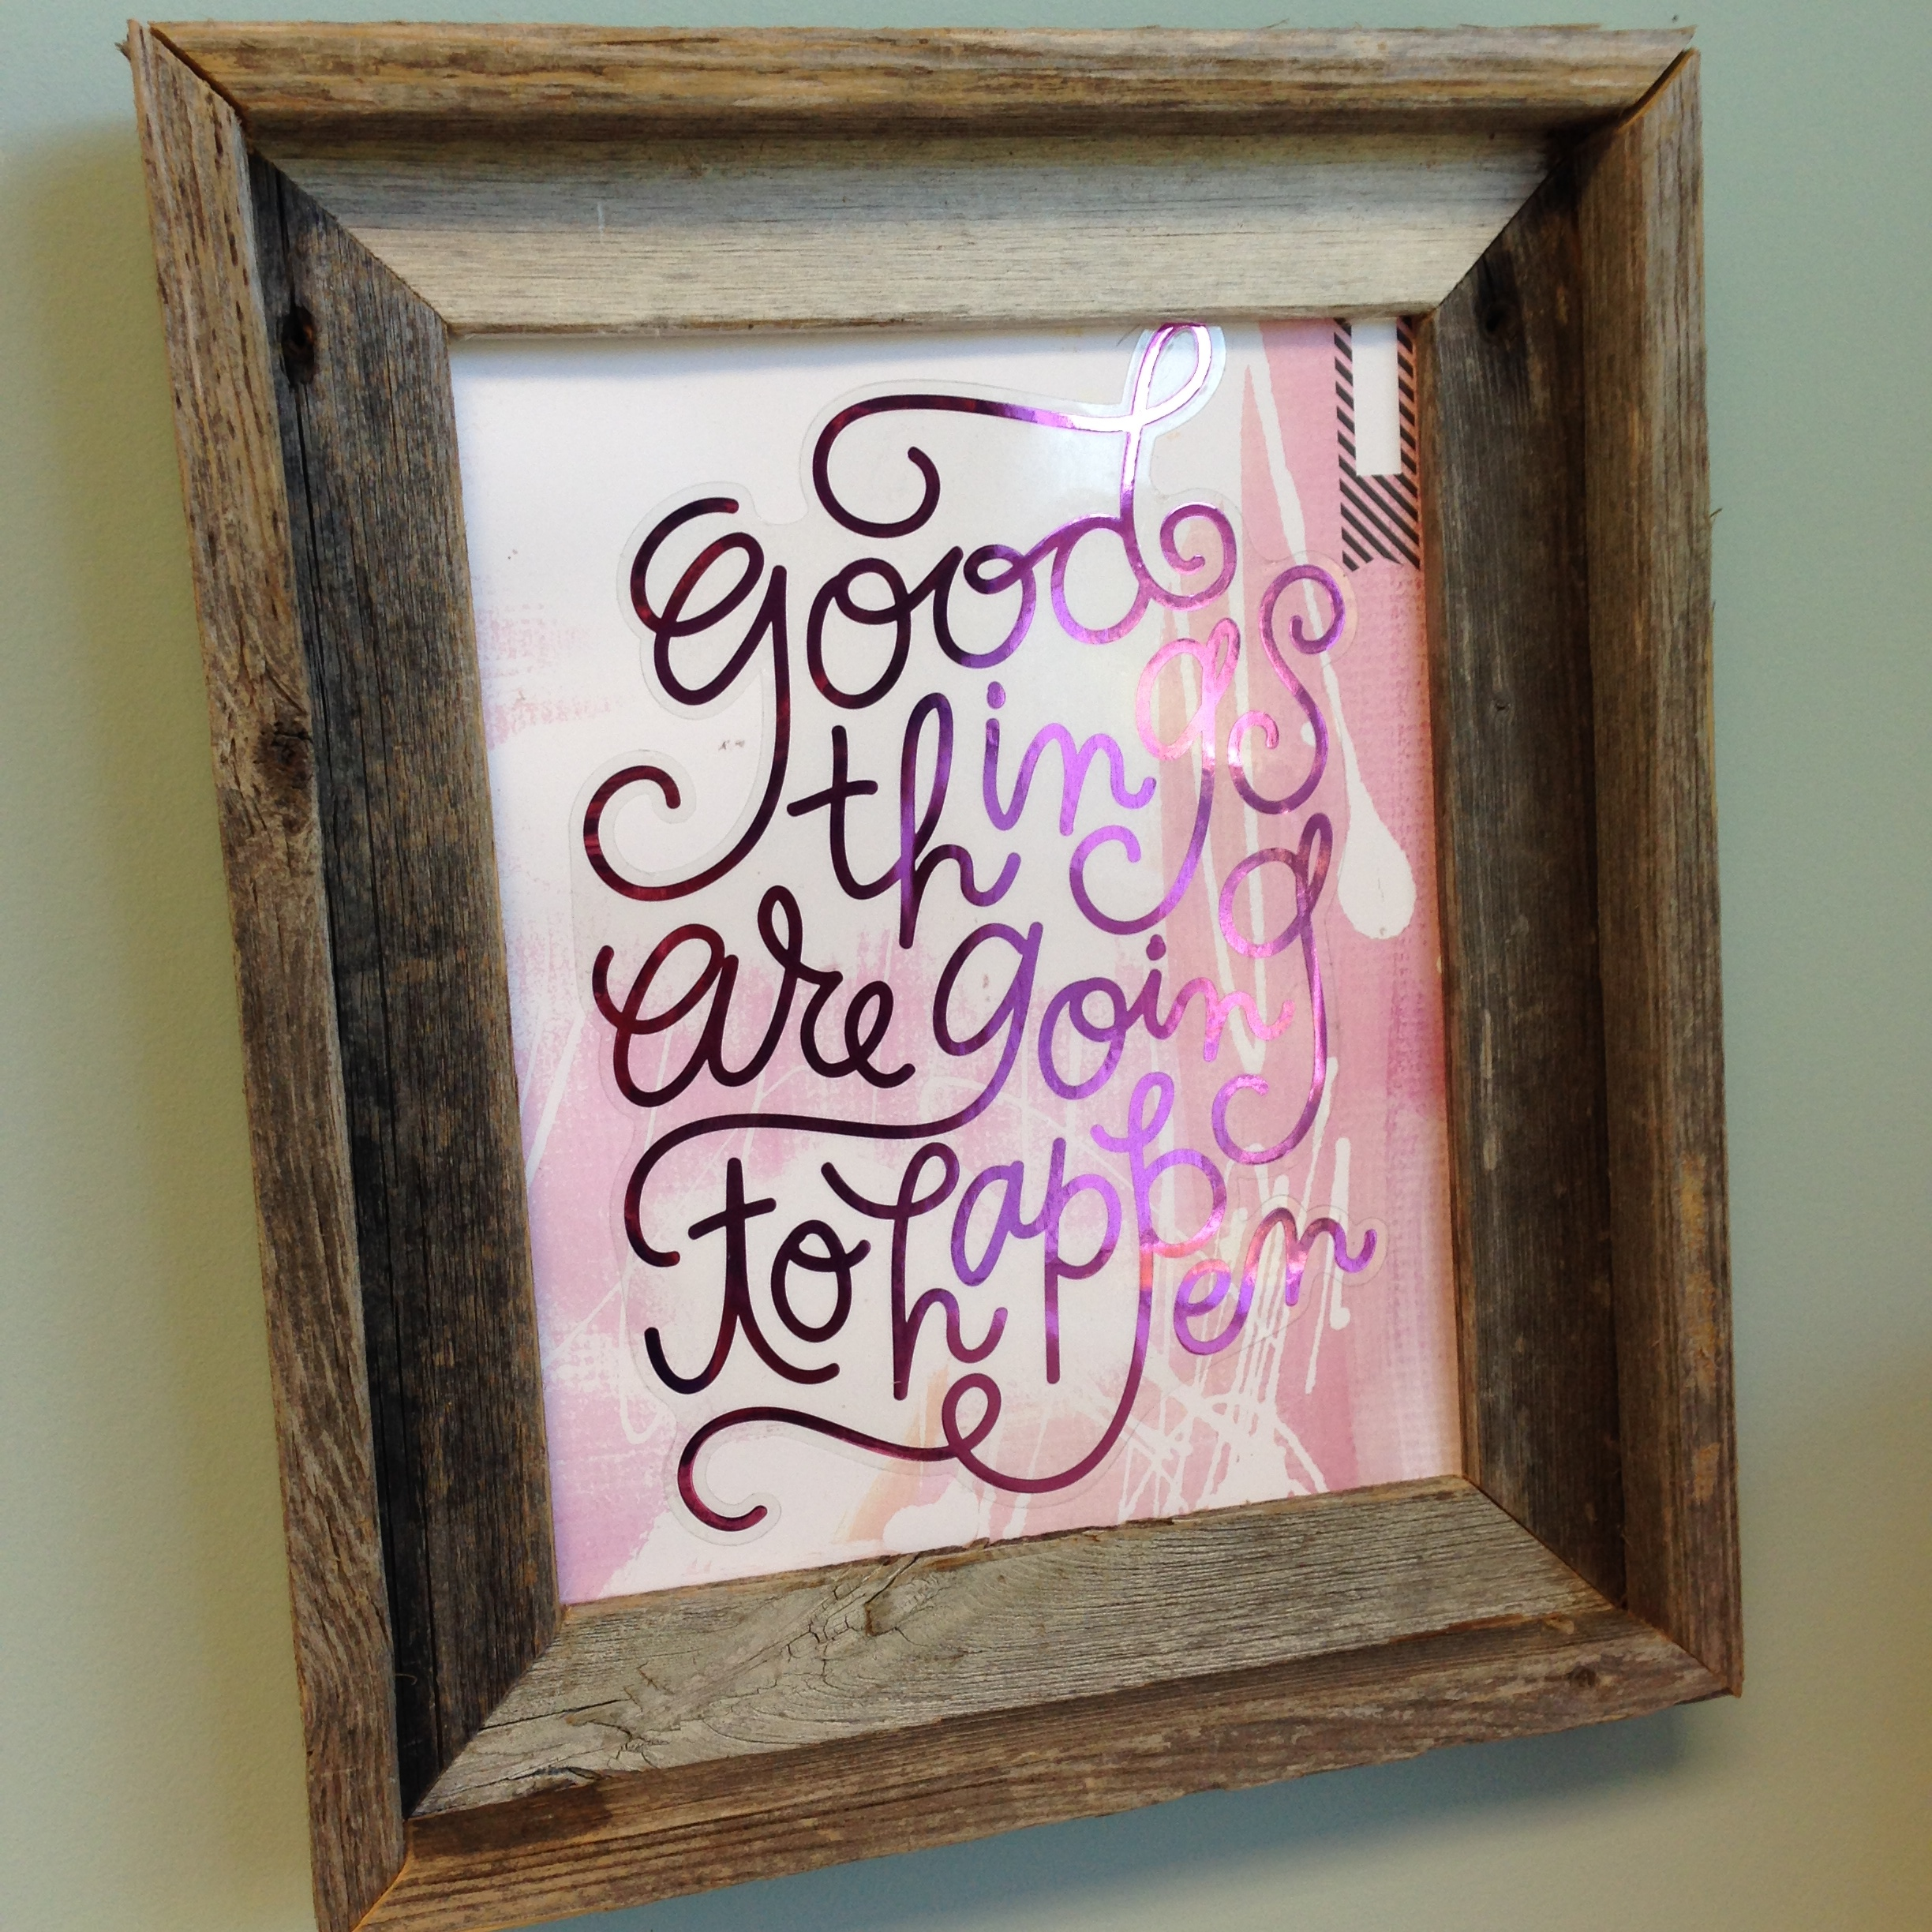 Good things are going to happen foil sticker framed.  New jumbo mambi stickers from Michaels. .jpg